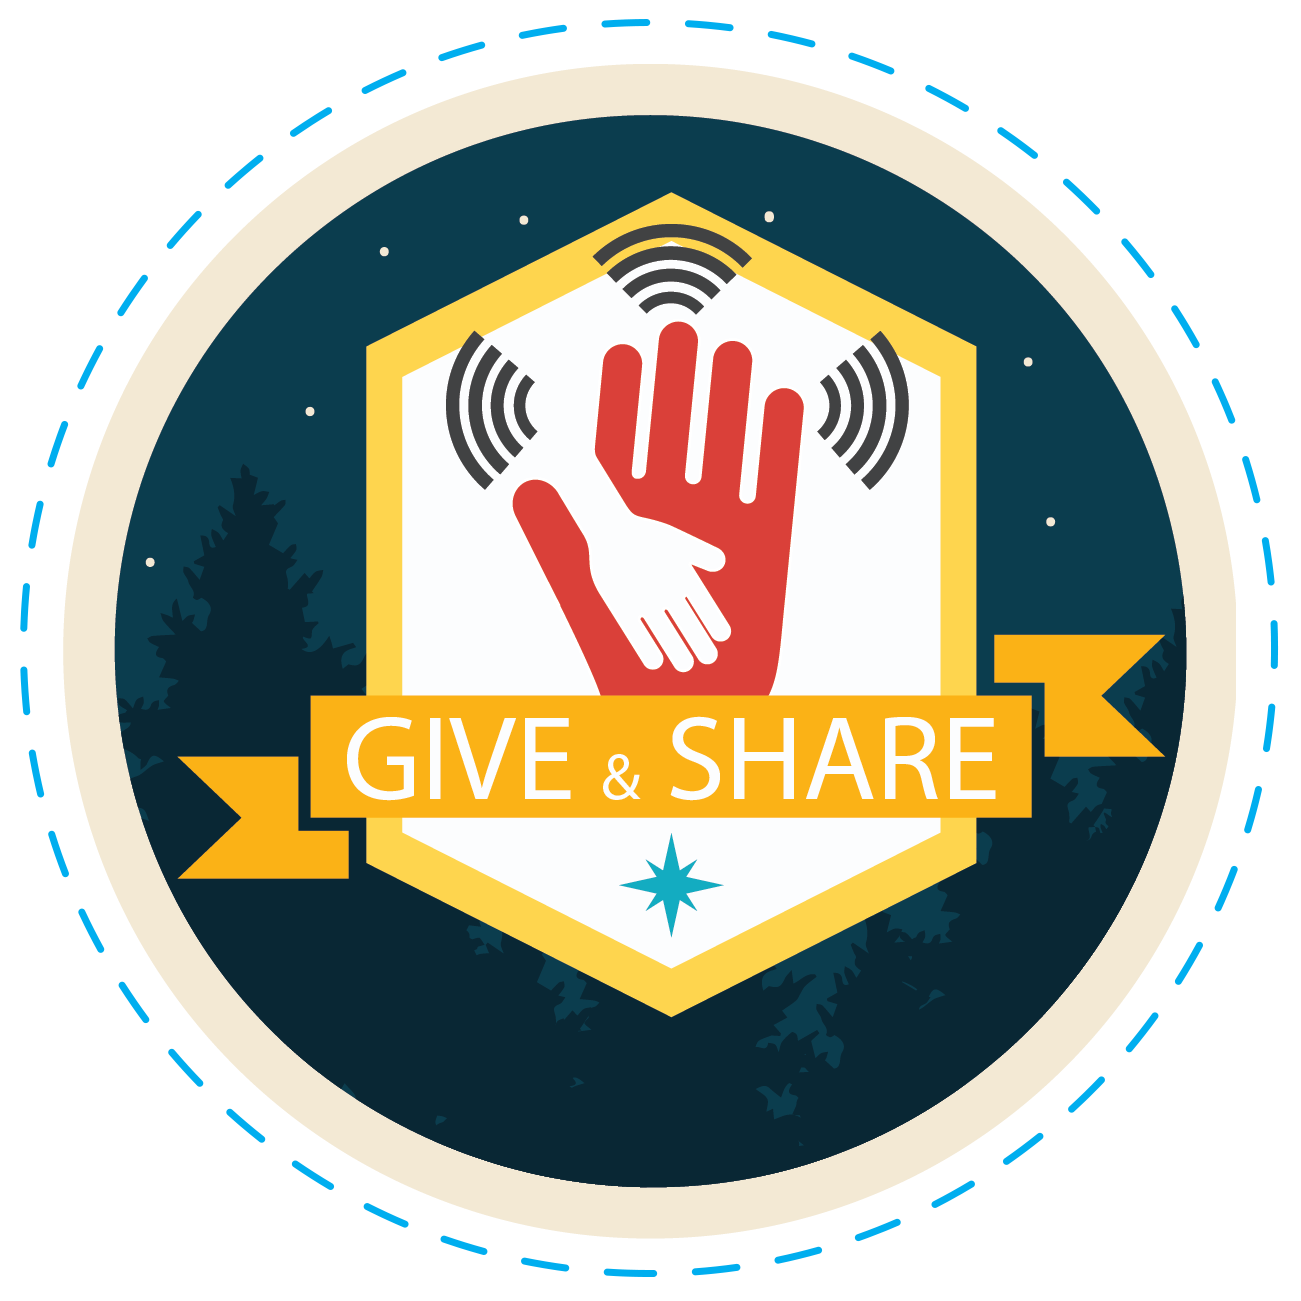 Give & Share